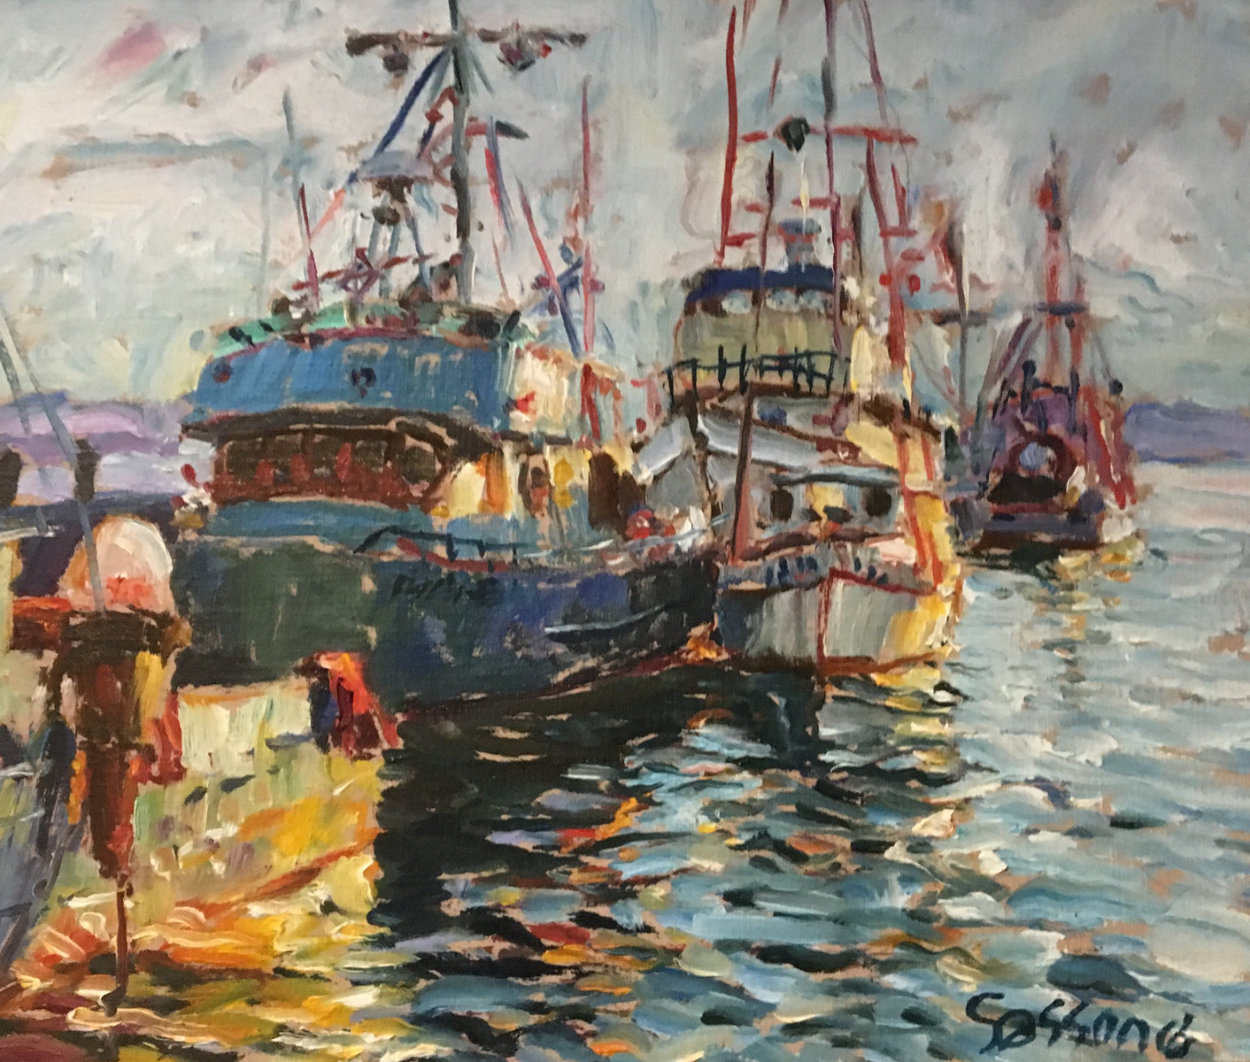 Fishing Boats 1978 17x20 (Early) Original Painting by Marco Sassone